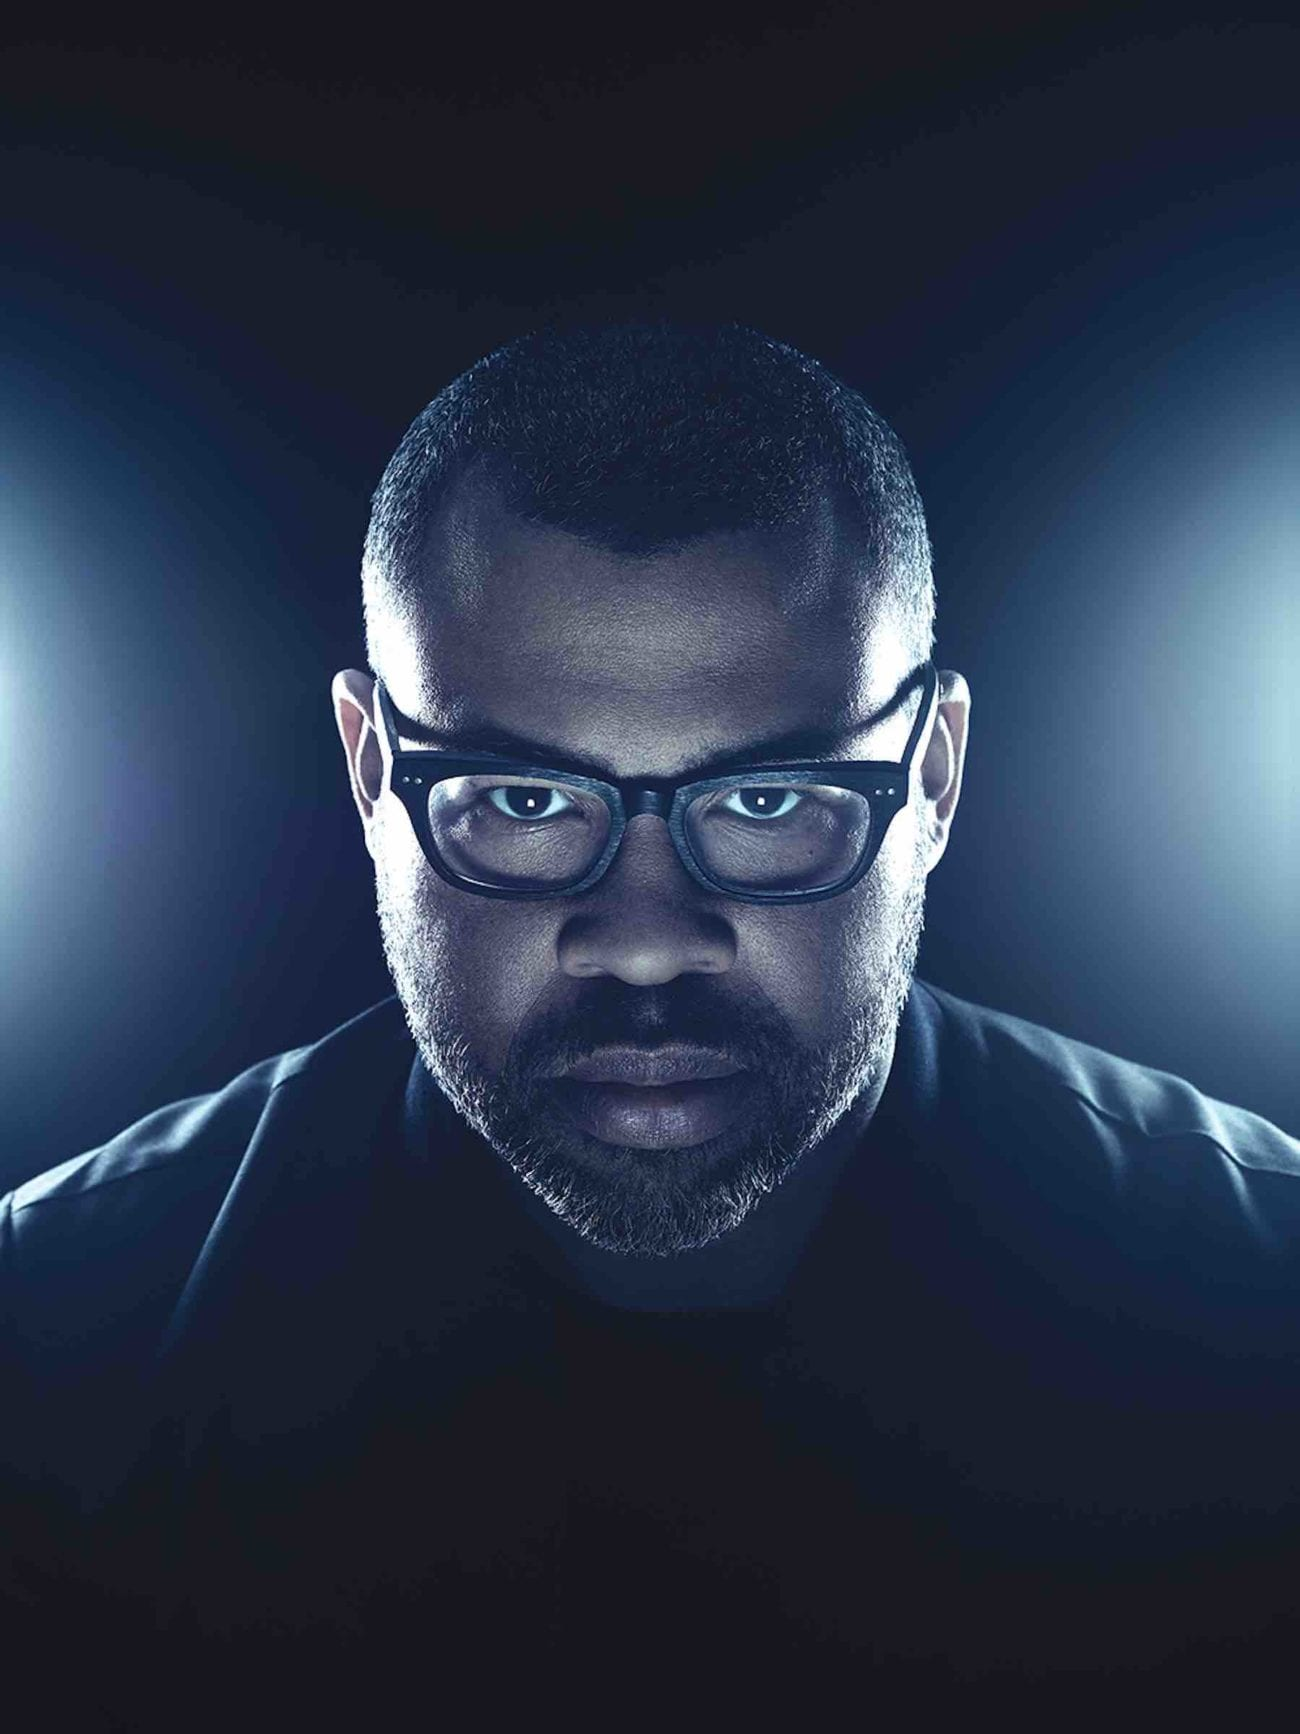 The unofficial modern king of horror, Jordan Peele, has been a busy man. So let's dive into where you can see him next in 2020.